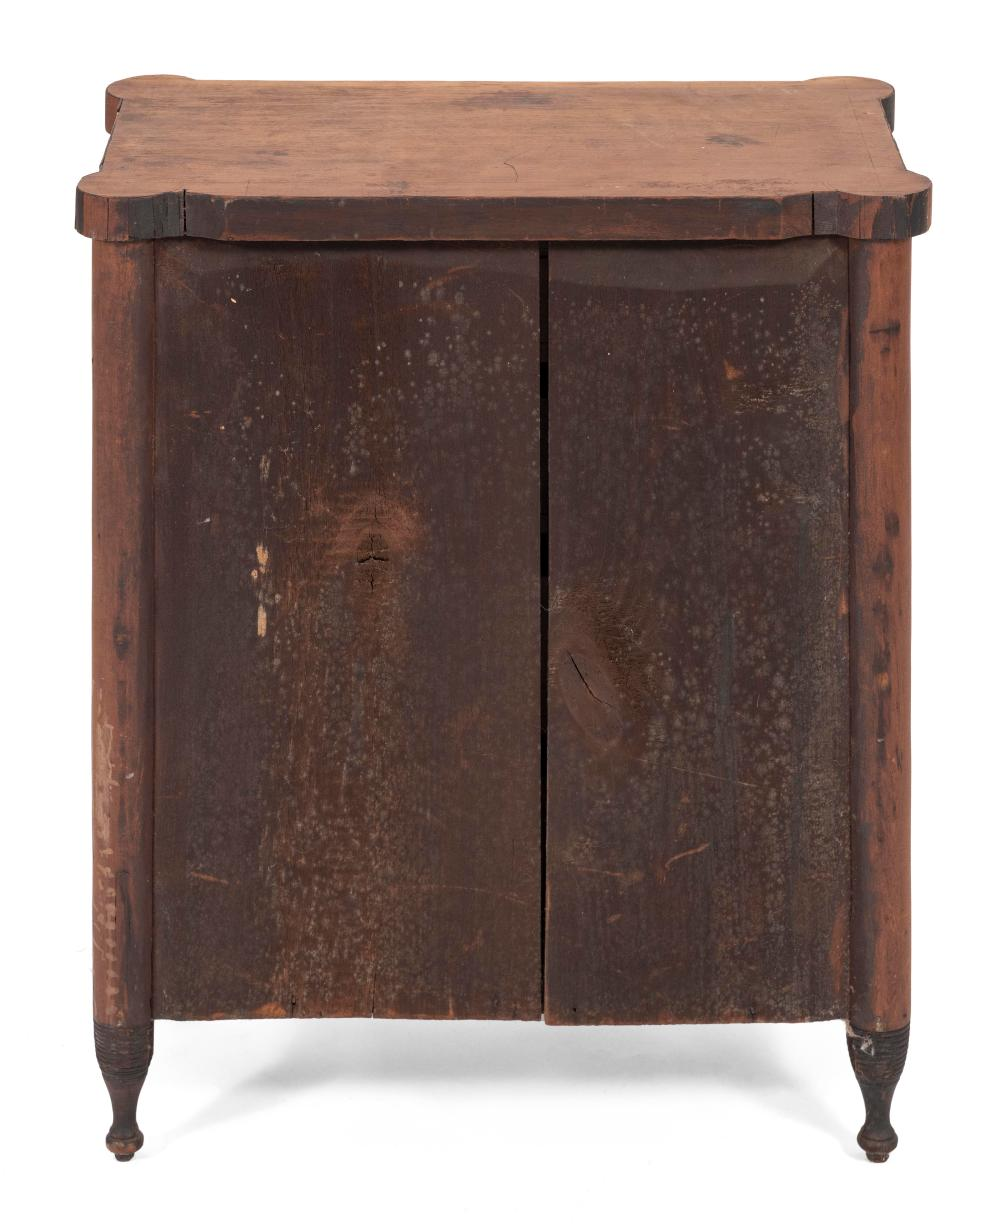 CHILD'S SHERATON FOUR-DRAWER CHEST First Quarter of the 19th Century Height 25.25